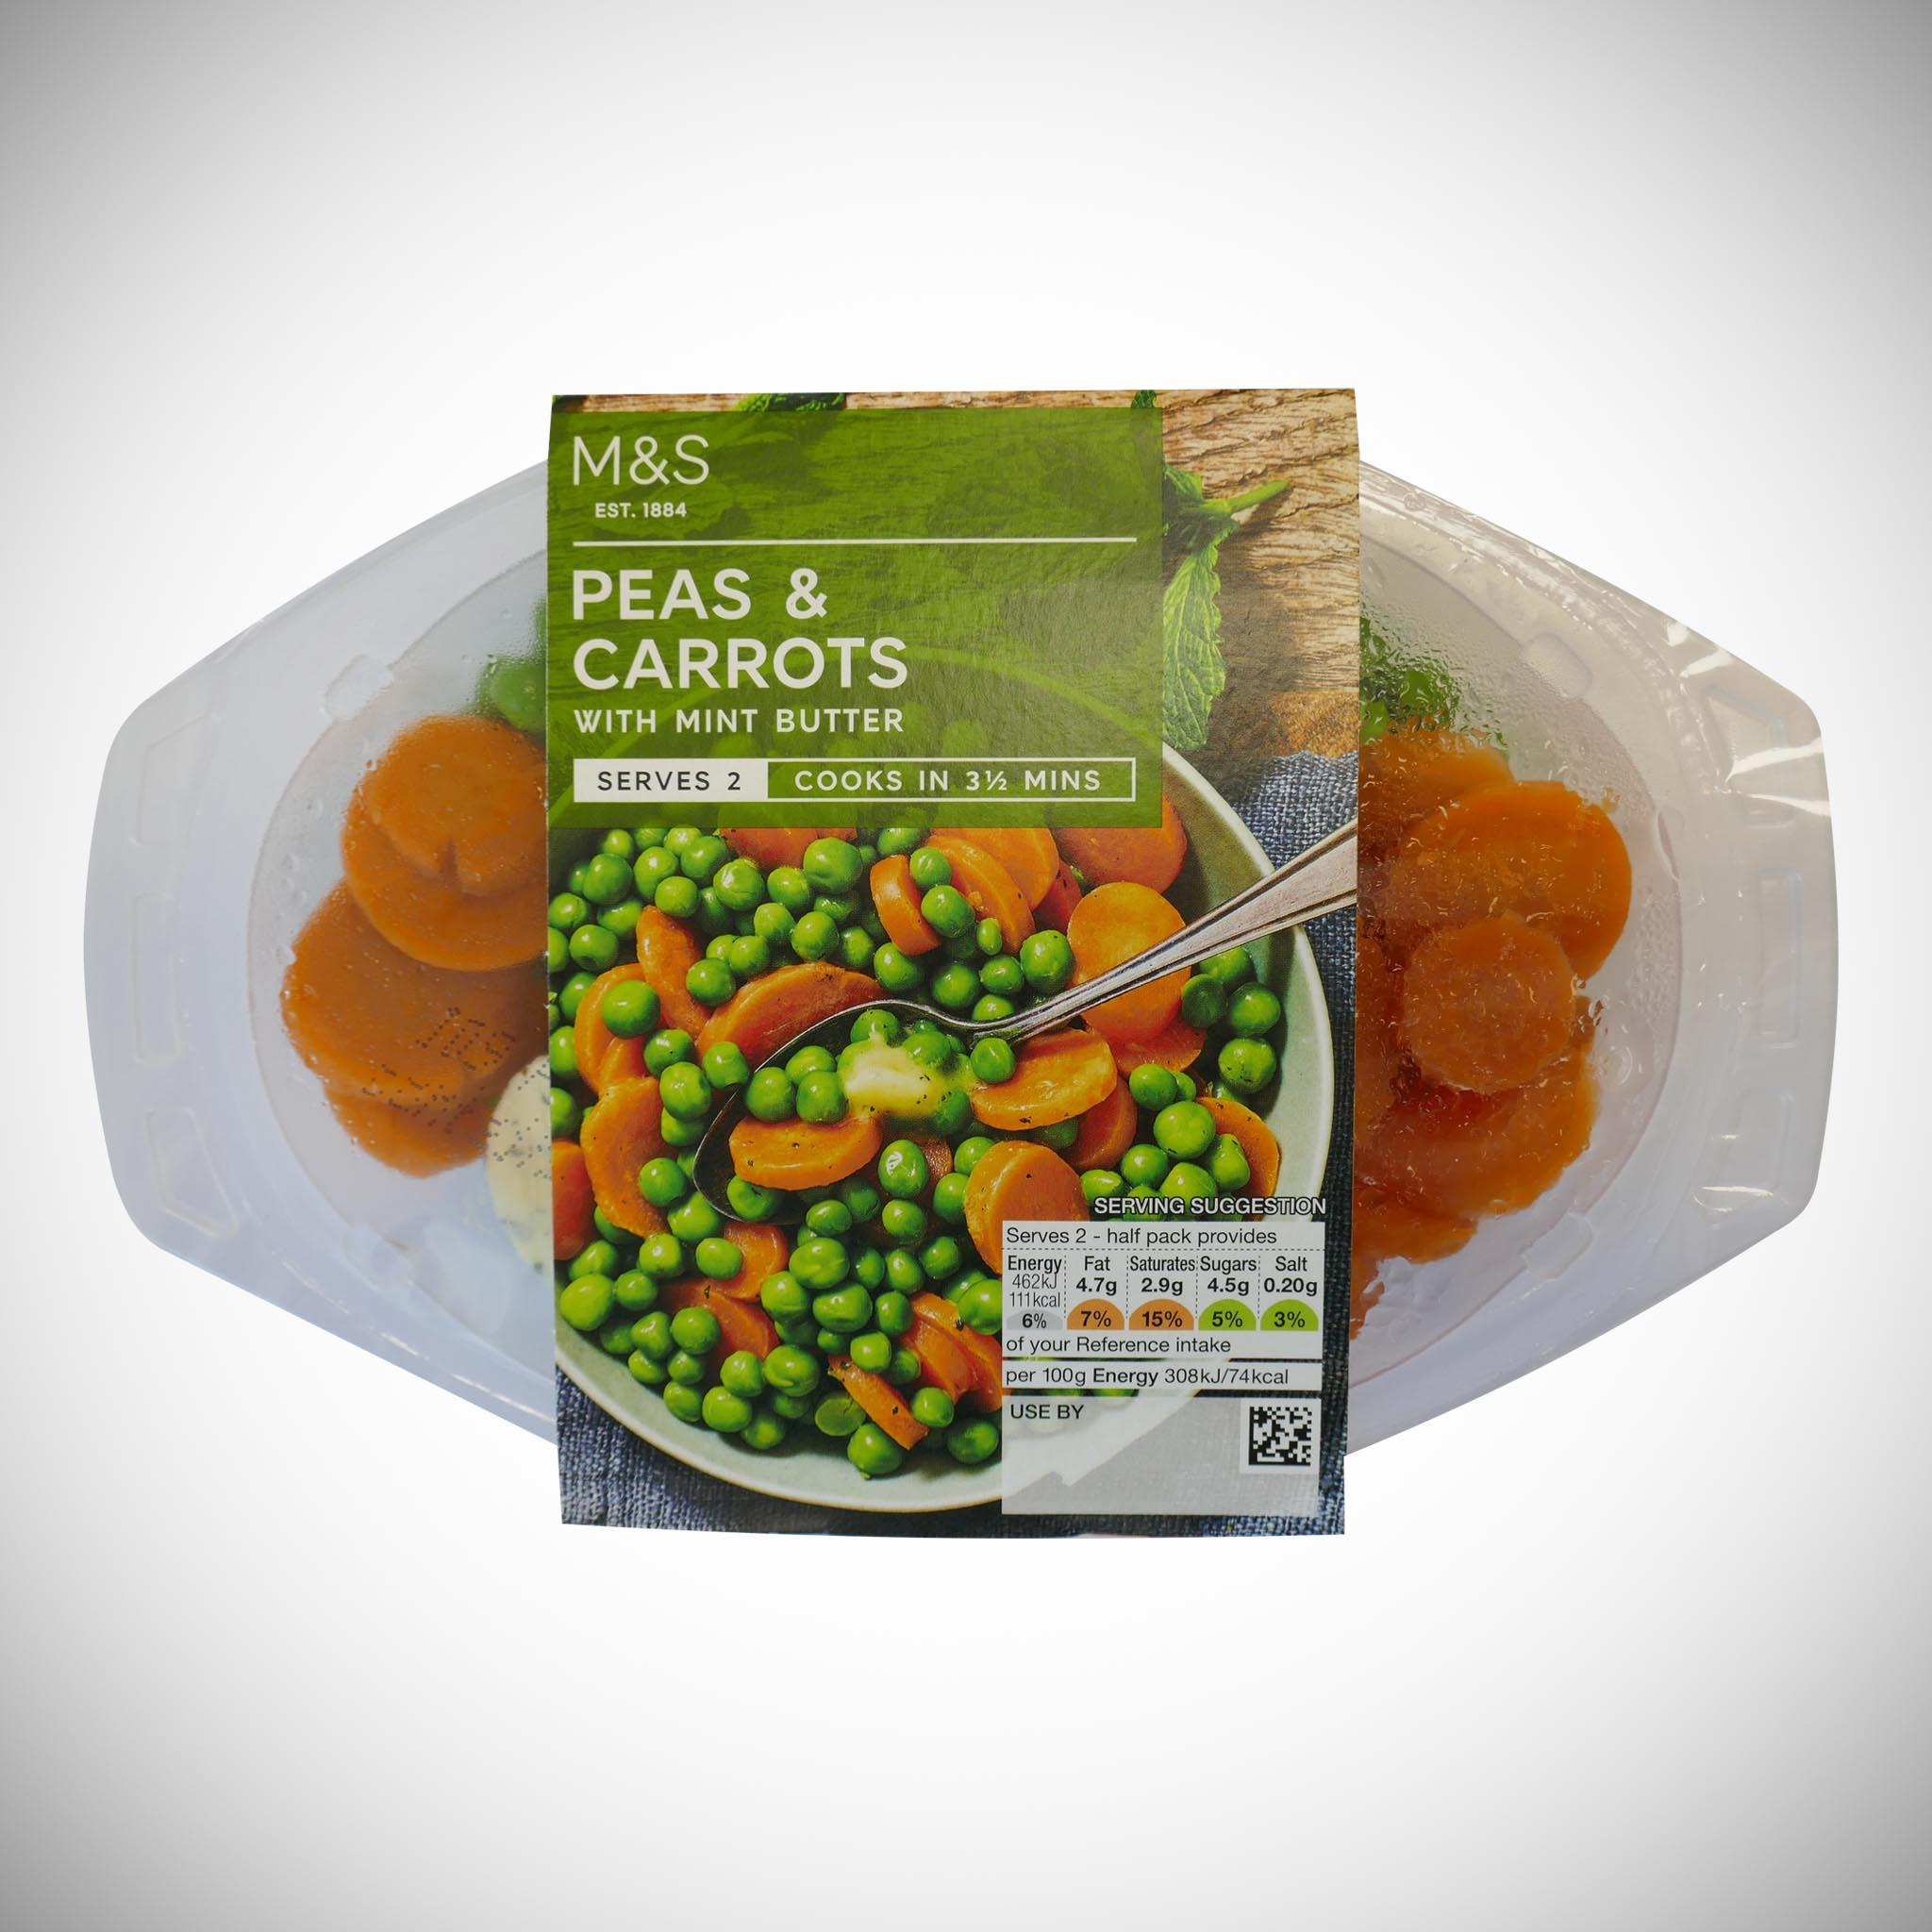 Peas & Carrots with Mint Butter 300g